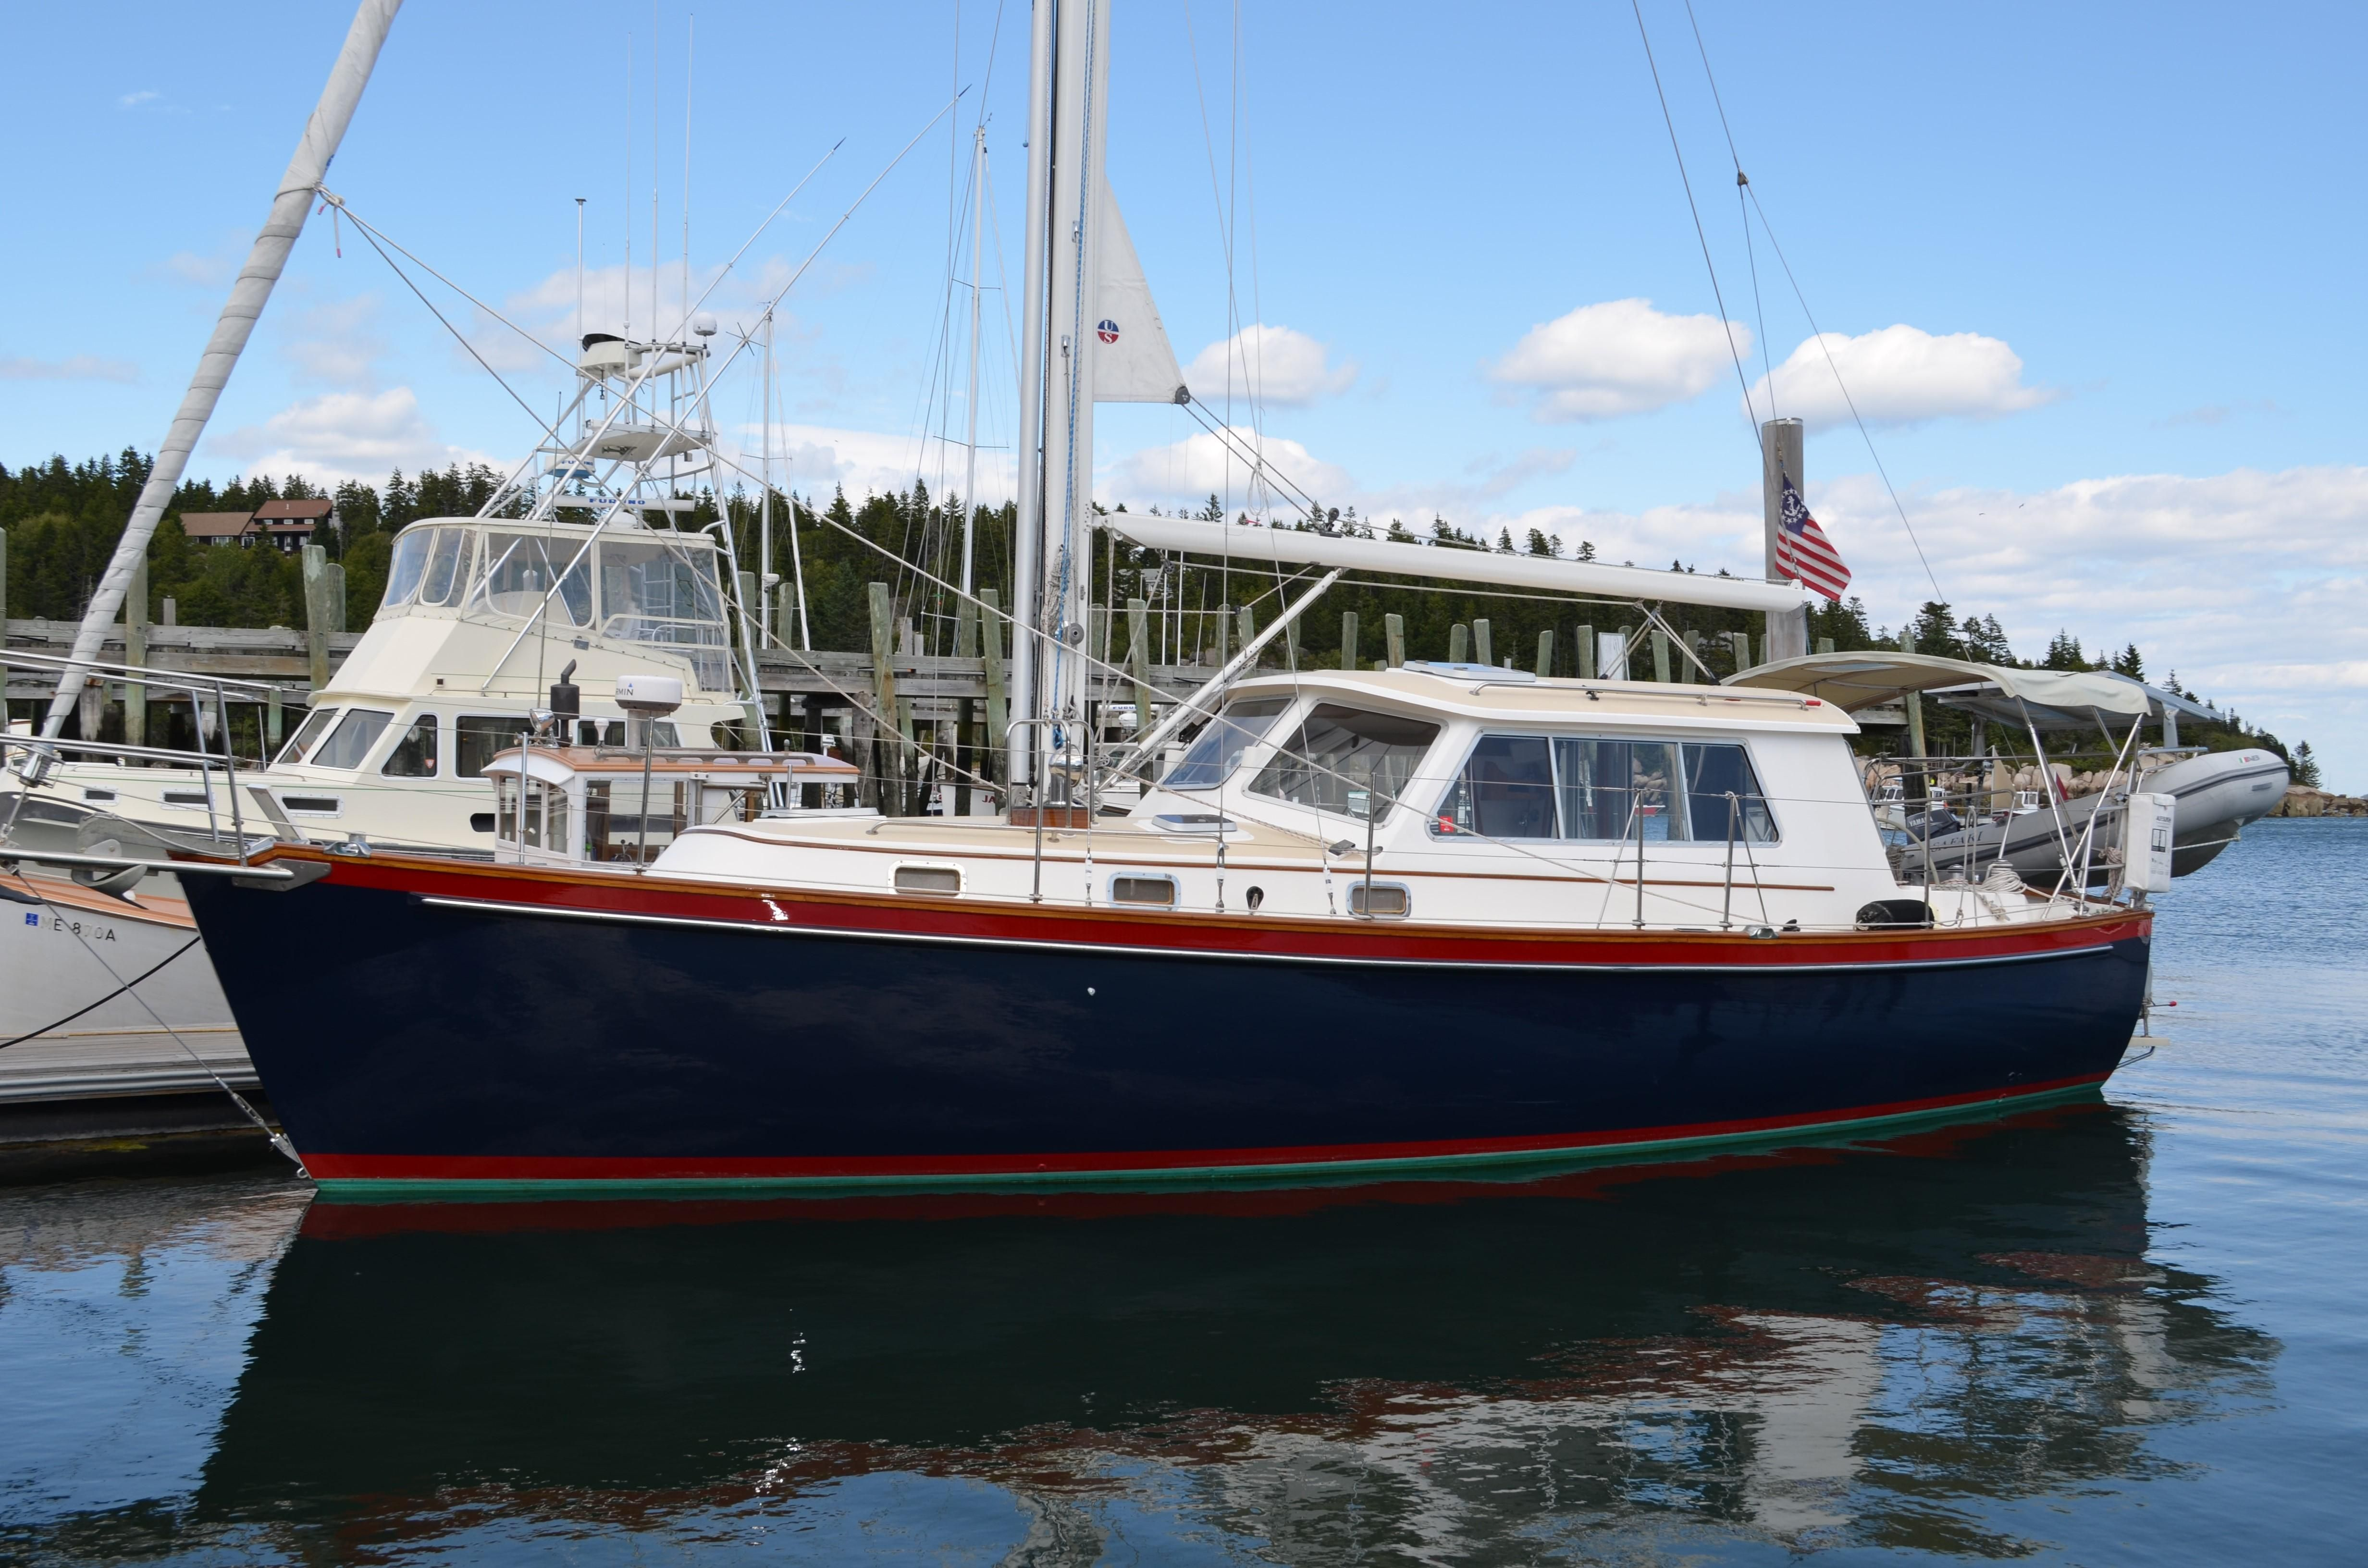 1999 cabo rico northeast 400 motorsailer sail boat for for Motor yachts for sale near me